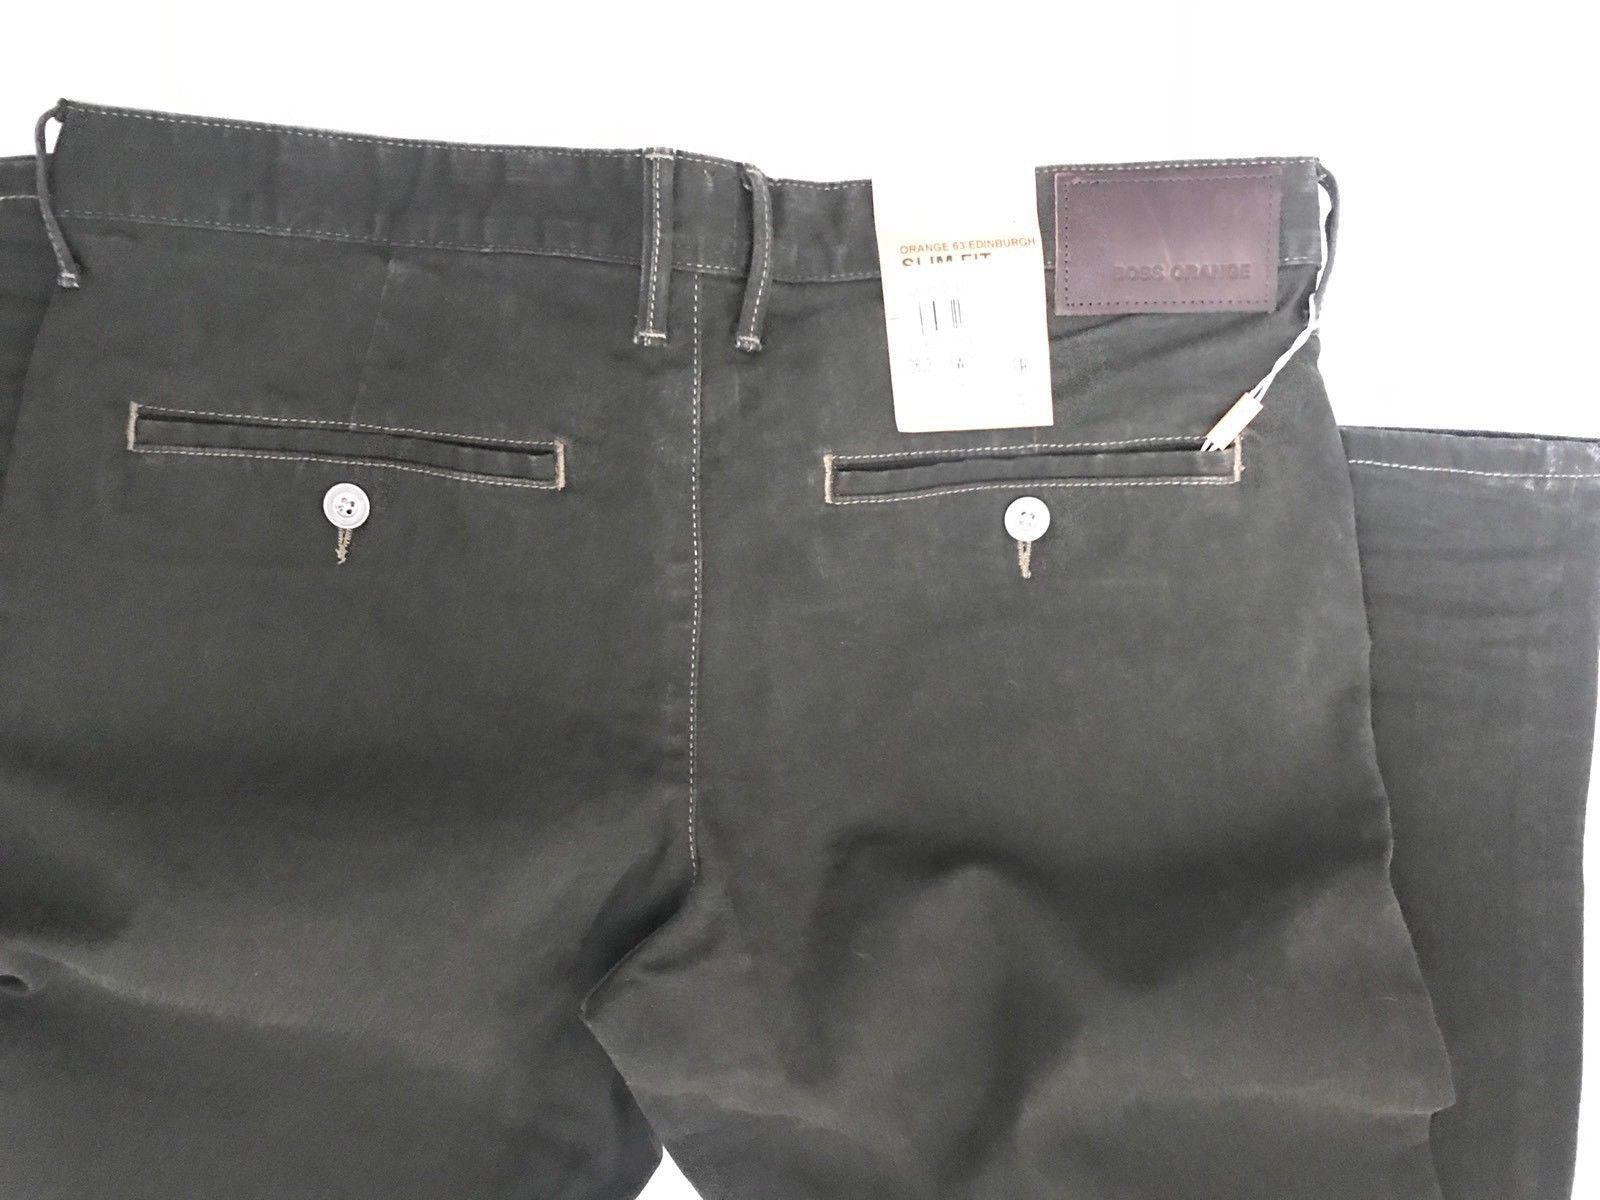 NWT $165 Boss Hugo Boss 'Edinburgh' Slim Fit Mens Pants 36 US - BAYSUPERSTORE